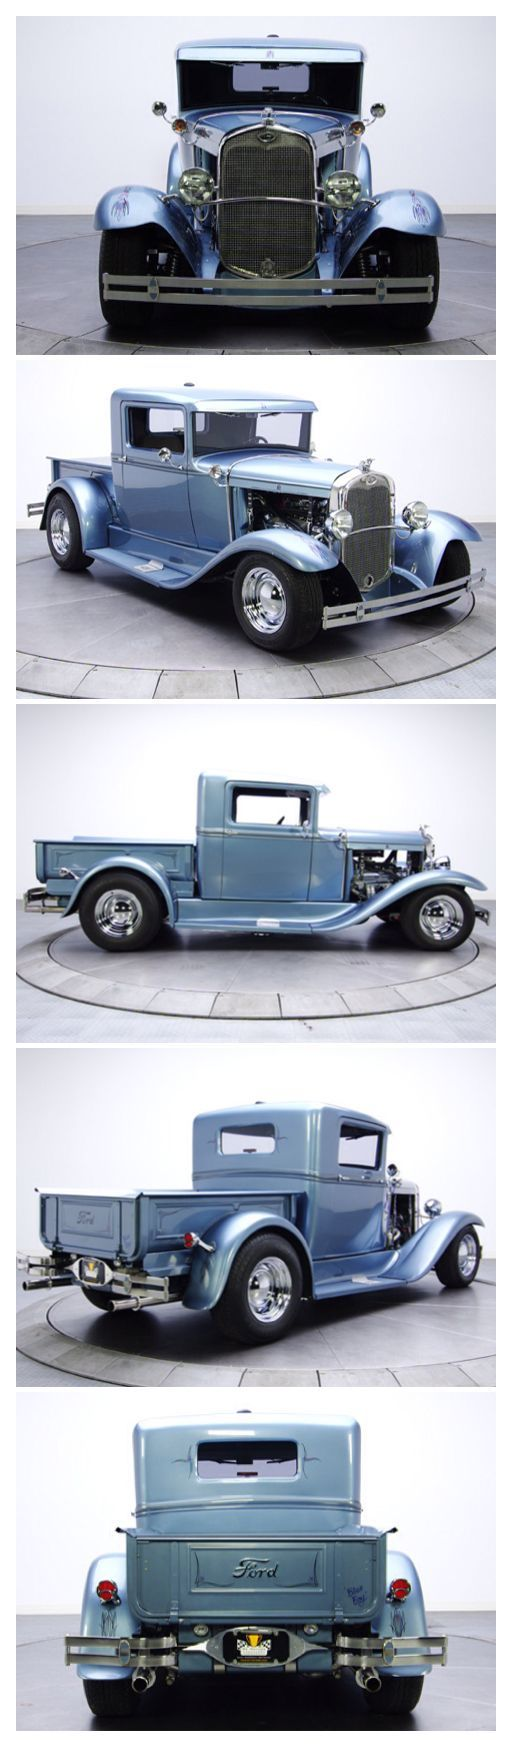 1930 Ford Model A Pickup ✏✏✏✏✏✏✏✏✏✏✏✏✏✏✏✏ AUTRES VEHICULES - OTHER VEHICLES ☞ https://fr.pinterest.com/barbierjeanf/pin-index-voitures-v%C3%A9hicules/ ══════════════════════ BIJOUX ☞ https://www.facebook.com/media/set/?set=a.1351591571533839&type=1&l=bb0129771f ✏✏✏✏✏✏✏✏✏✏✏✏✏✏✏✏ #hotrodsclassiccars